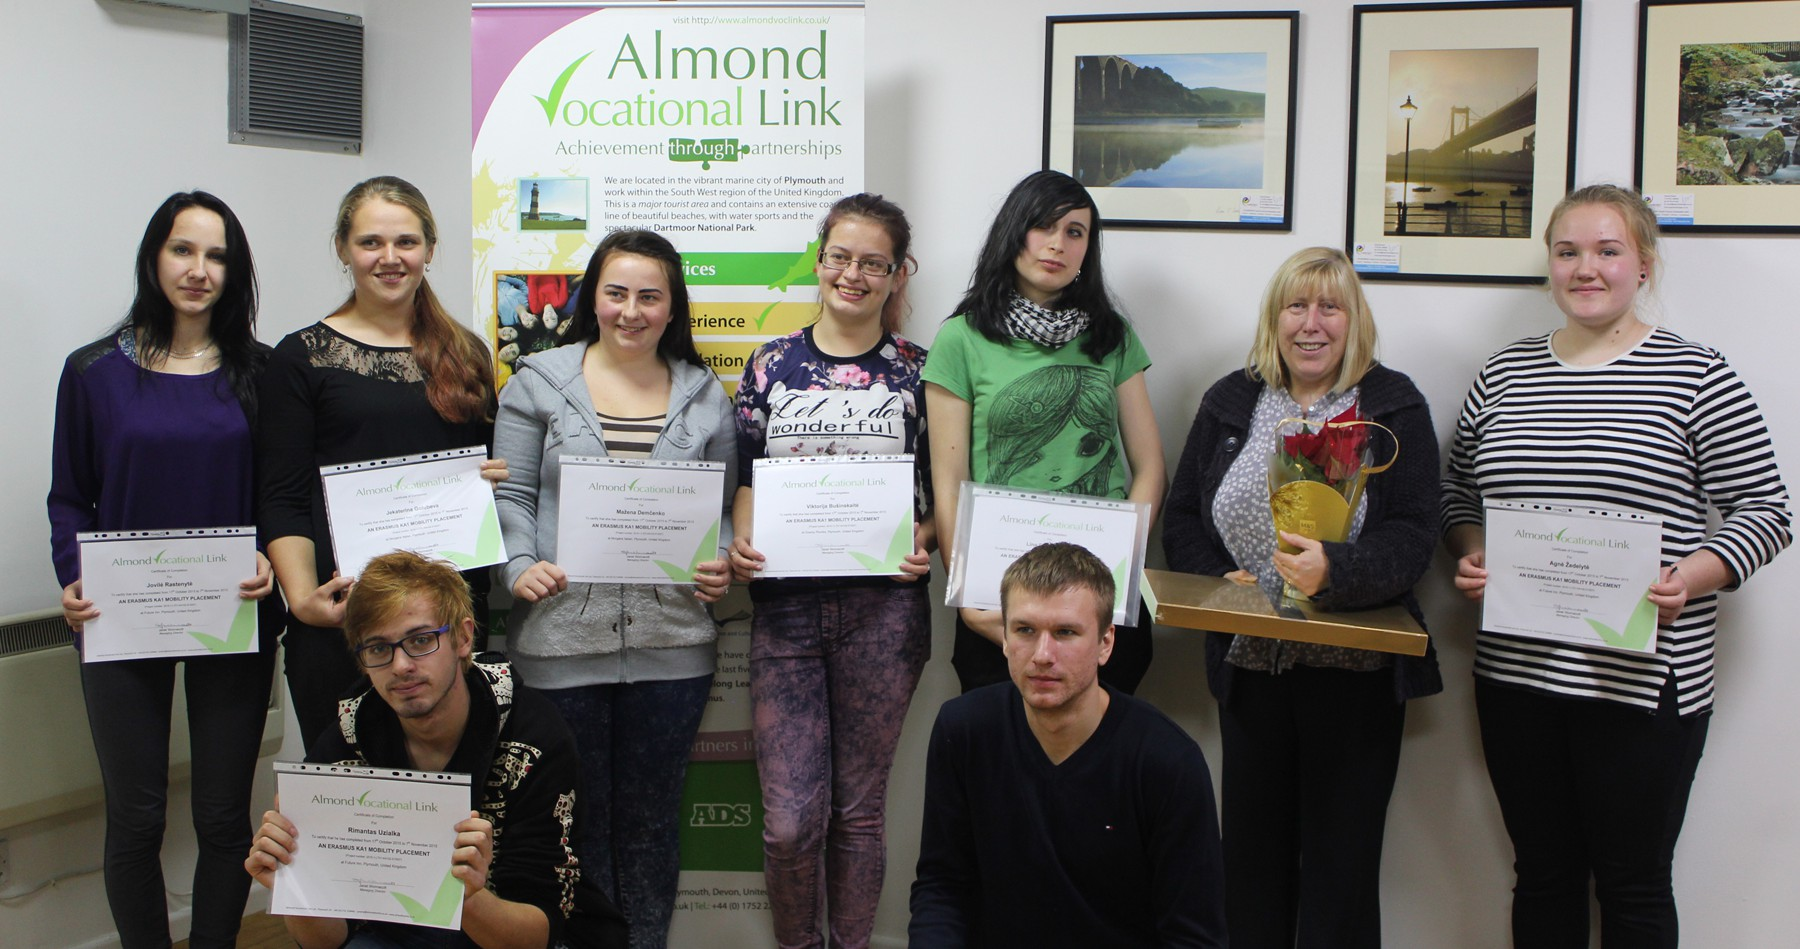 Certificate Ceremony Almond Vocational Link Plymouth Erasmus Plus